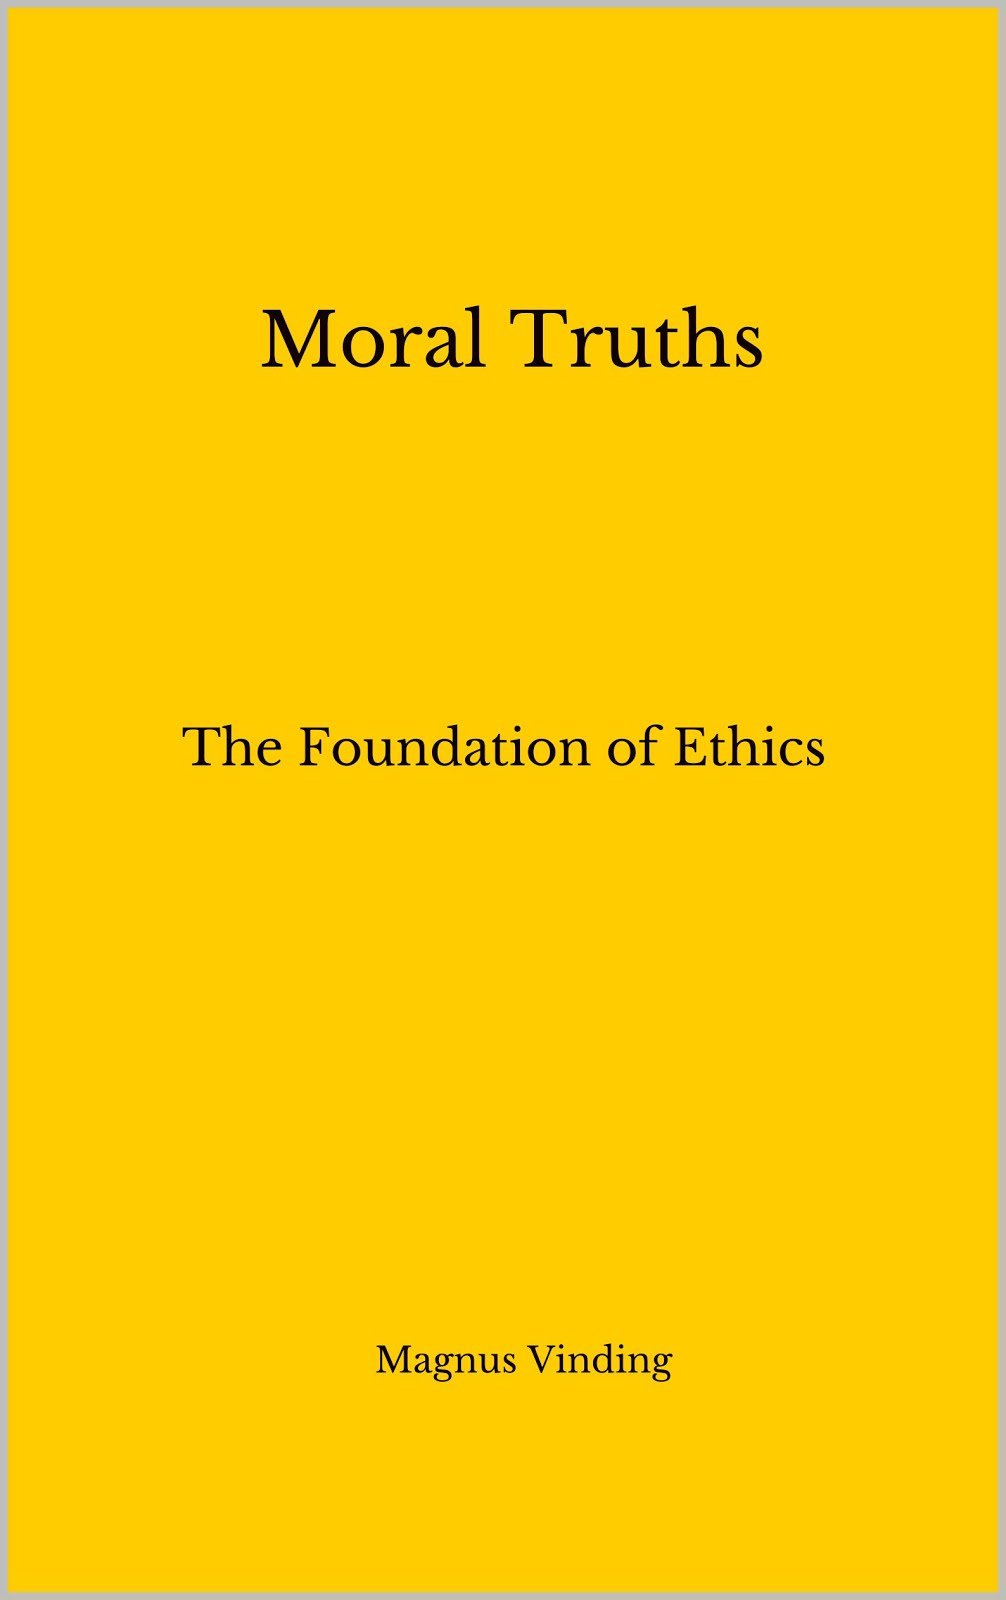 Moral Truths: The Foundation of Ethics